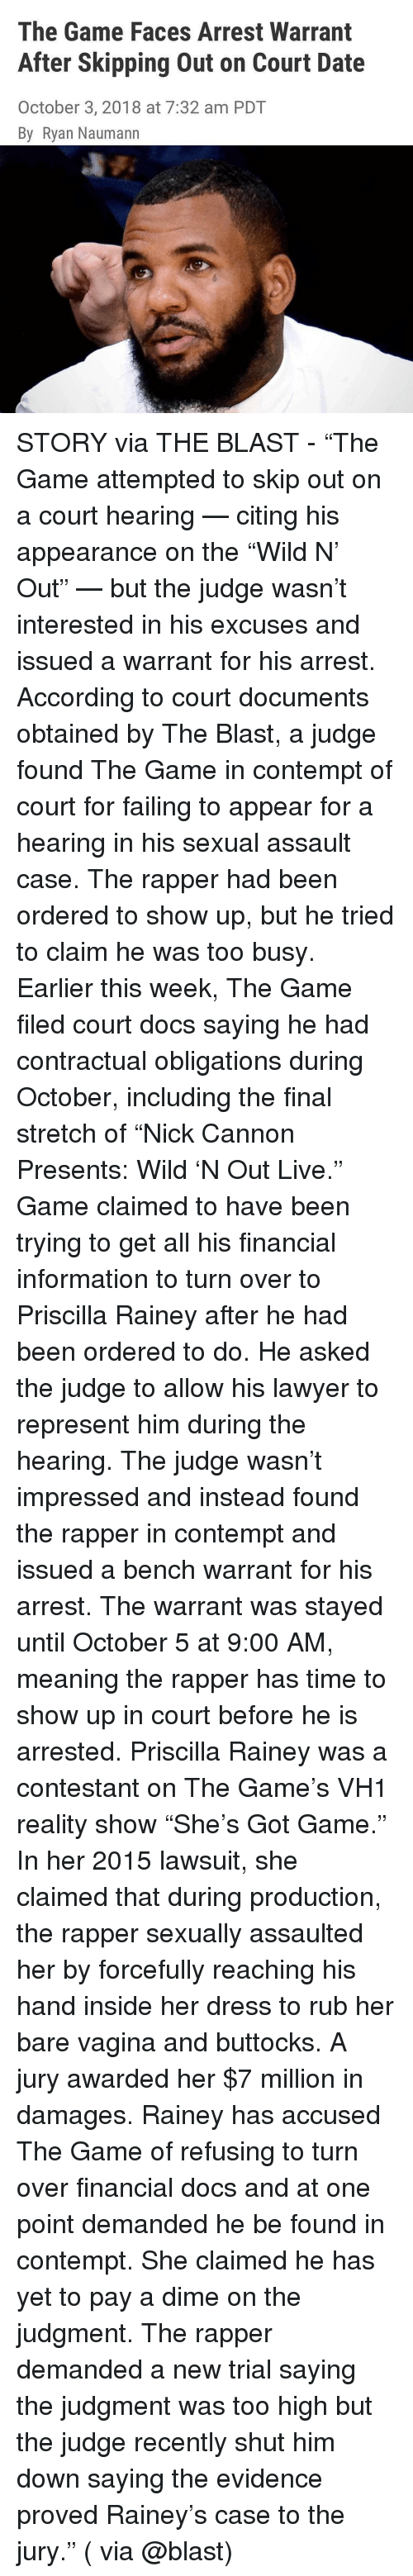 """Lawyer, Memes, and The Game: The Game Faces Arrest Warrant  After Skipping Out on Court Date  October 3, 2018 at 7:32 am PDT  By Ryan Naumann STORY via THE BLAST - """"The Game attempted to skip out on a court hearing — citing his appearance on the """"Wild N' Out"""" — but the judge wasn't interested in his excuses and issued a warrant for his arrest. According to court documents obtained by The Blast, a judge found The Game in contempt of court for failing to appear for a hearing in his sexual assault case. The rapper had been ordered to show up, but he tried to claim he was too busy. Earlier this week, The Game filed court docs saying he had contractual obligations during October, including the final stretch of """"Nick Cannon Presents: Wild 'N Out Live."""" Game claimed to have been trying to get all his financial information to turn over to Priscilla Rainey after he had been ordered to do. He asked the judge to allow his lawyer to represent him during the hearing. The judge wasn't impressed and instead found the rapper in contempt and issued a bench warrant for his arrest. The warrant was stayed until October 5 at 9:00 AM, meaning the rapper has time to show up in court before he is arrested. Priscilla Rainey was a contestant on The Game's VH1 reality show """"She's Got Game."""" In her 2015 lawsuit, she claimed that during production, the rapper sexually assaulted her by forcefully reaching his hand inside her dress to rub her bare vagina and buttocks. A jury awarded her $7 million in damages. Rainey has accused The Game of refusing to turn over financial docs and at one point demanded he be found in contempt. She claimed he has yet to pay a dime on the judgment. The rapper demanded a new trial saying the judgment was too high but the judge recently shut him down saying the evidence proved Rainey's case to the jury."""" ( via @blast)"""